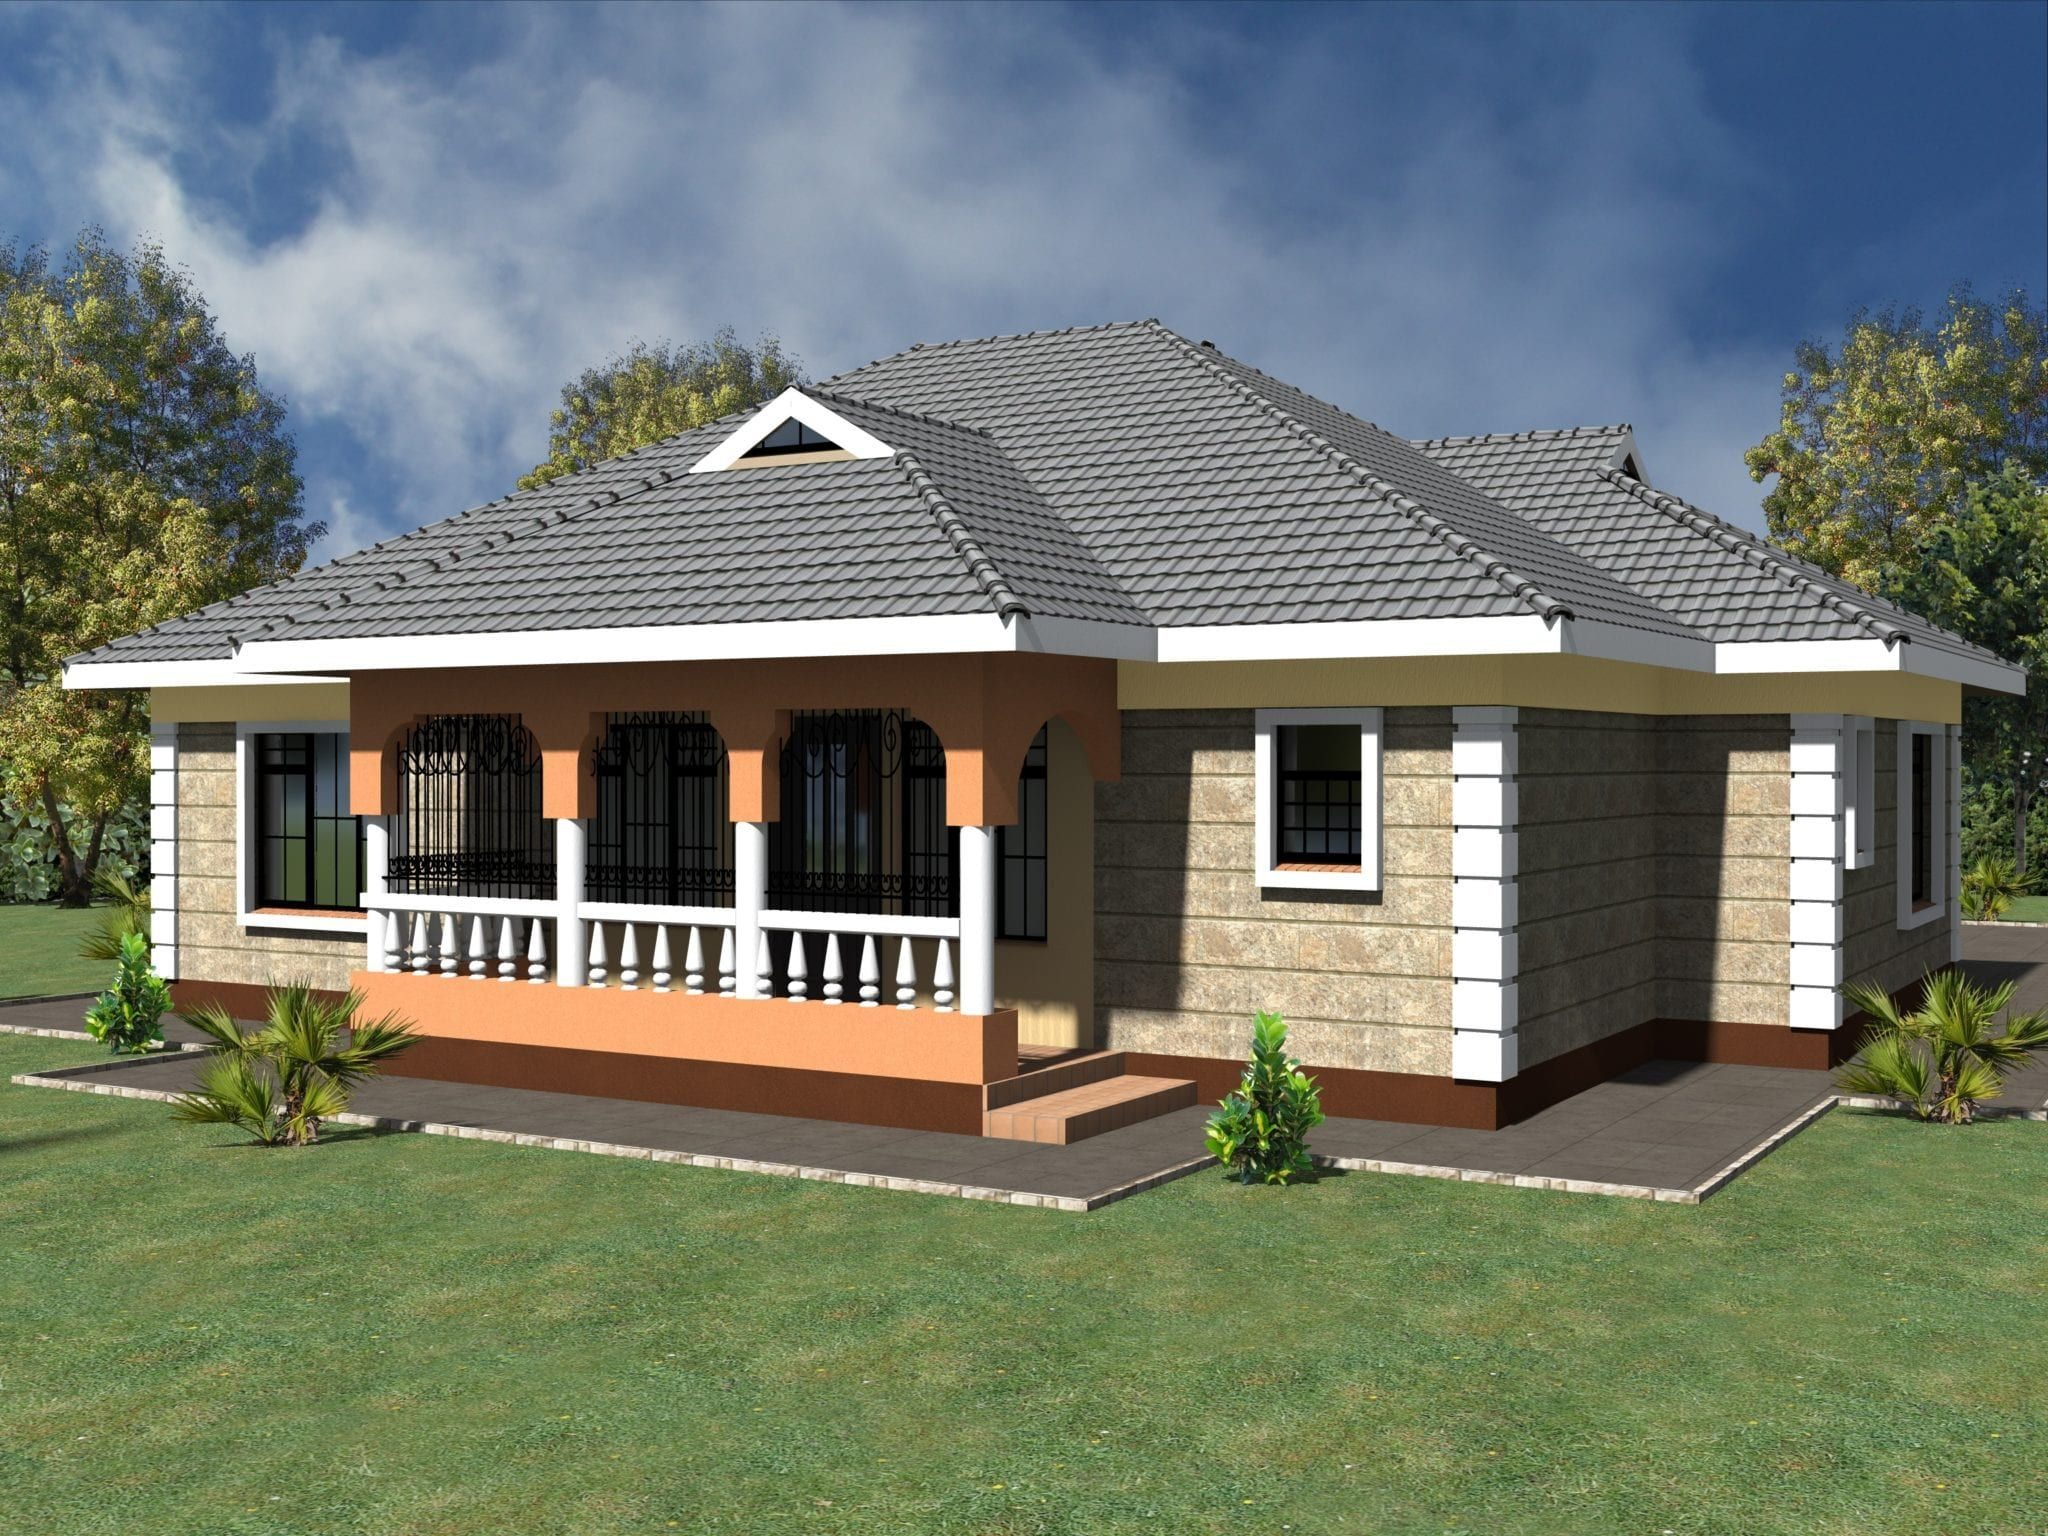 2 Bedroom House Designs In Kenya Unique House Plans Affordable House Plans Bedroom House Plans